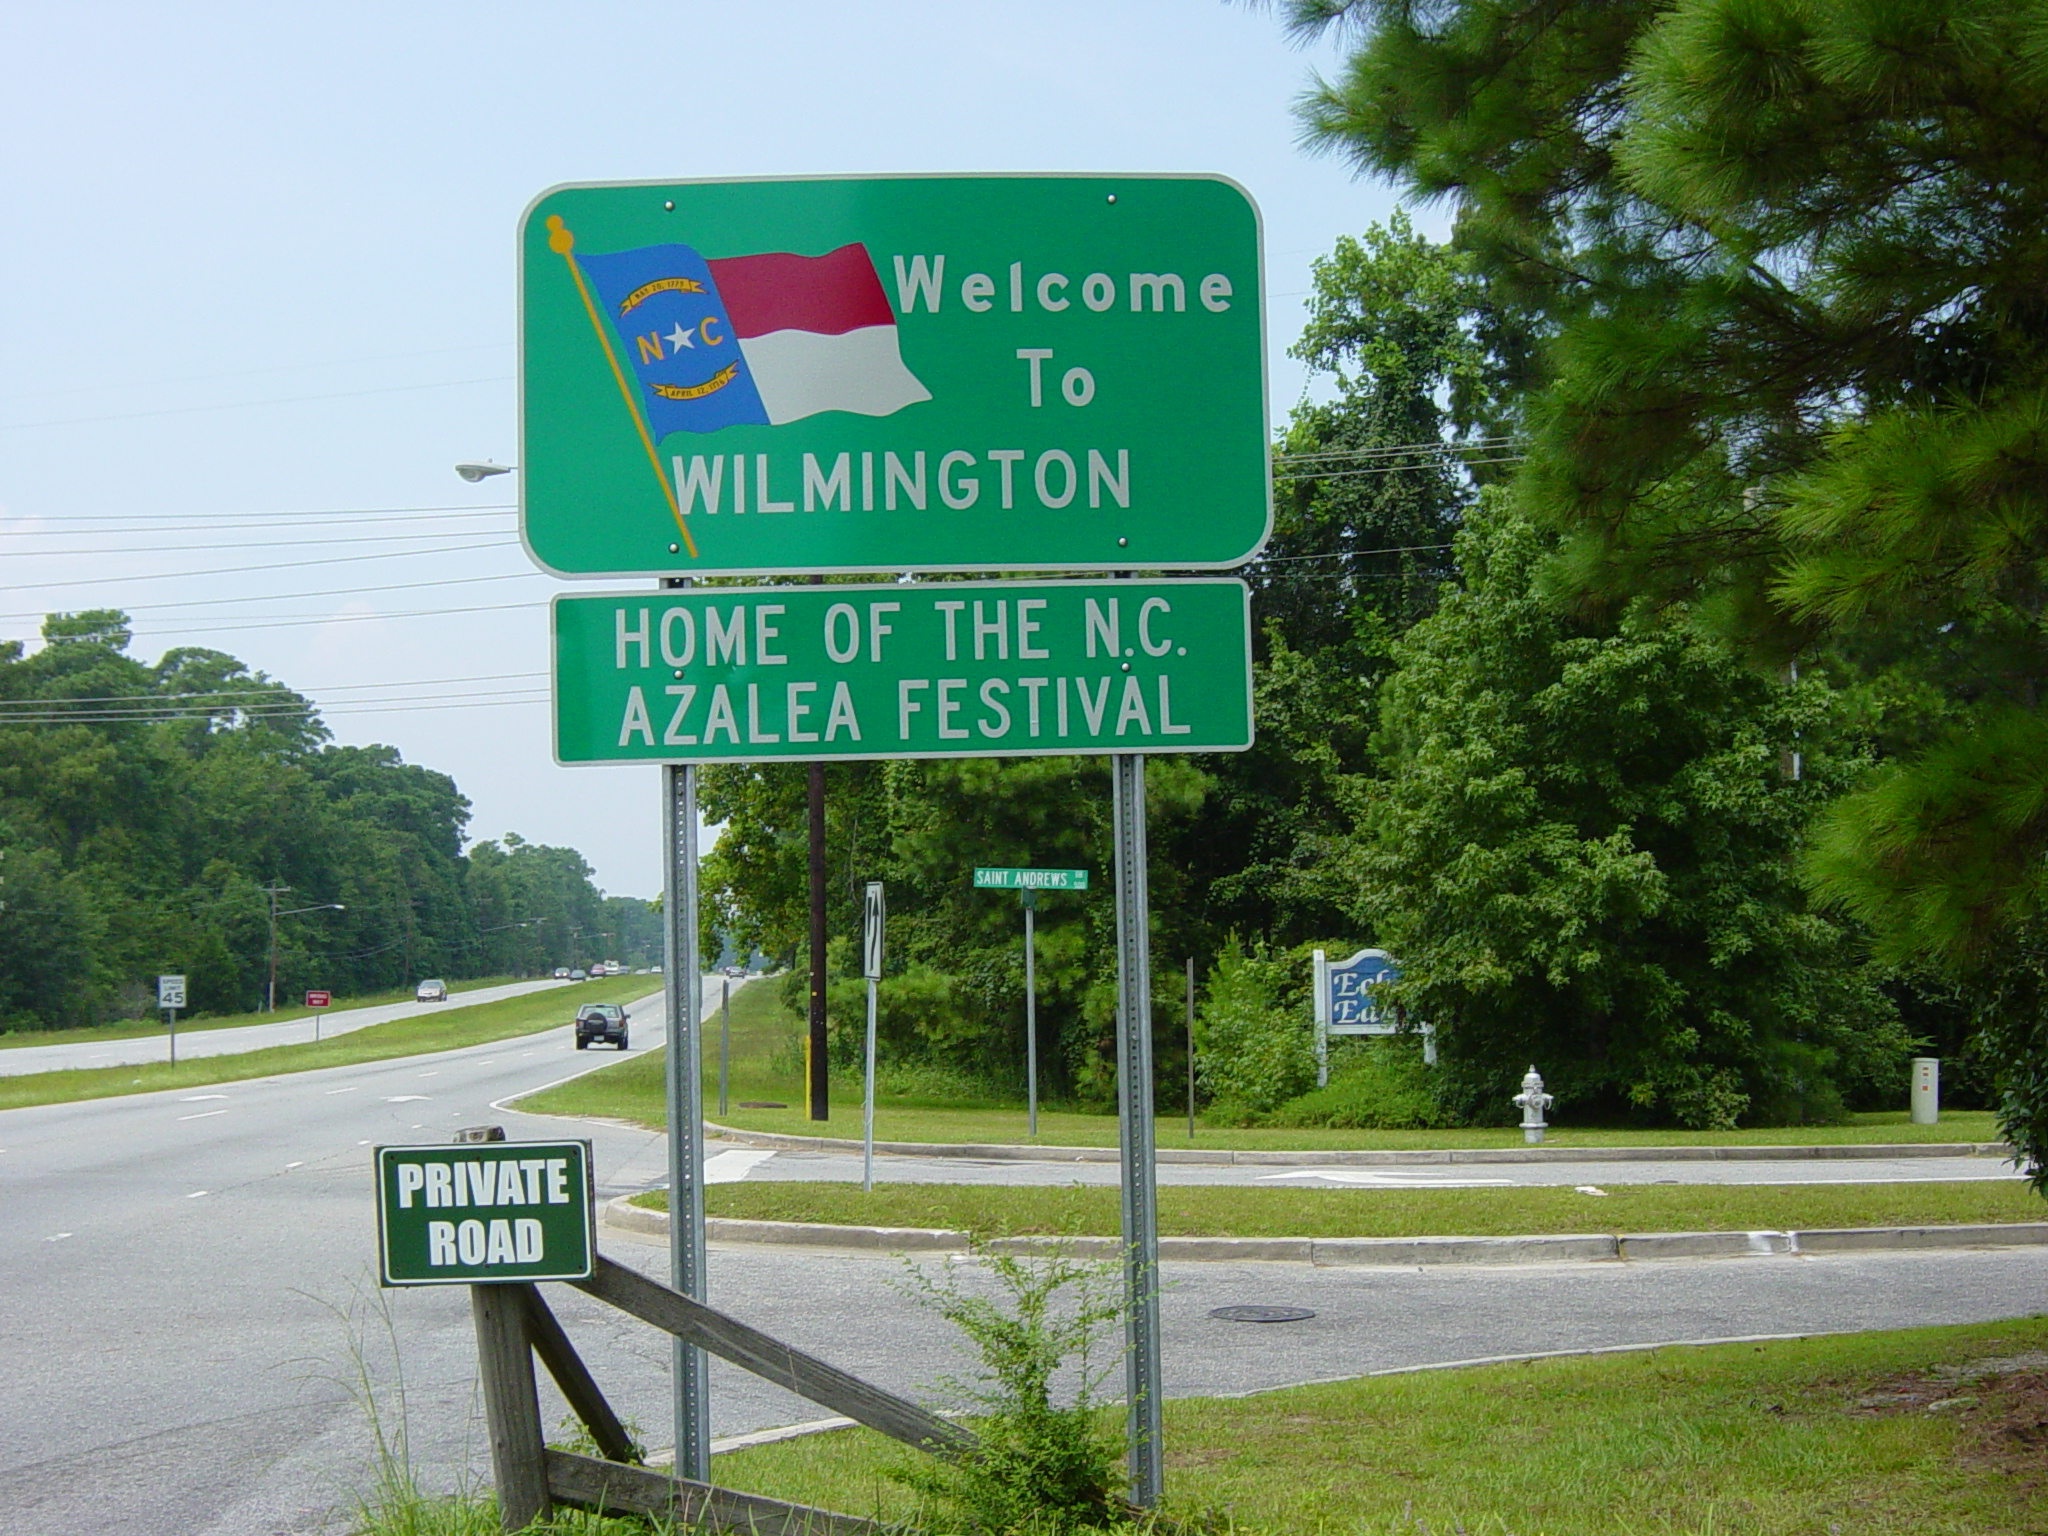 Top Locations In Wilmington Images in Lists for Pinterest 2048x1536